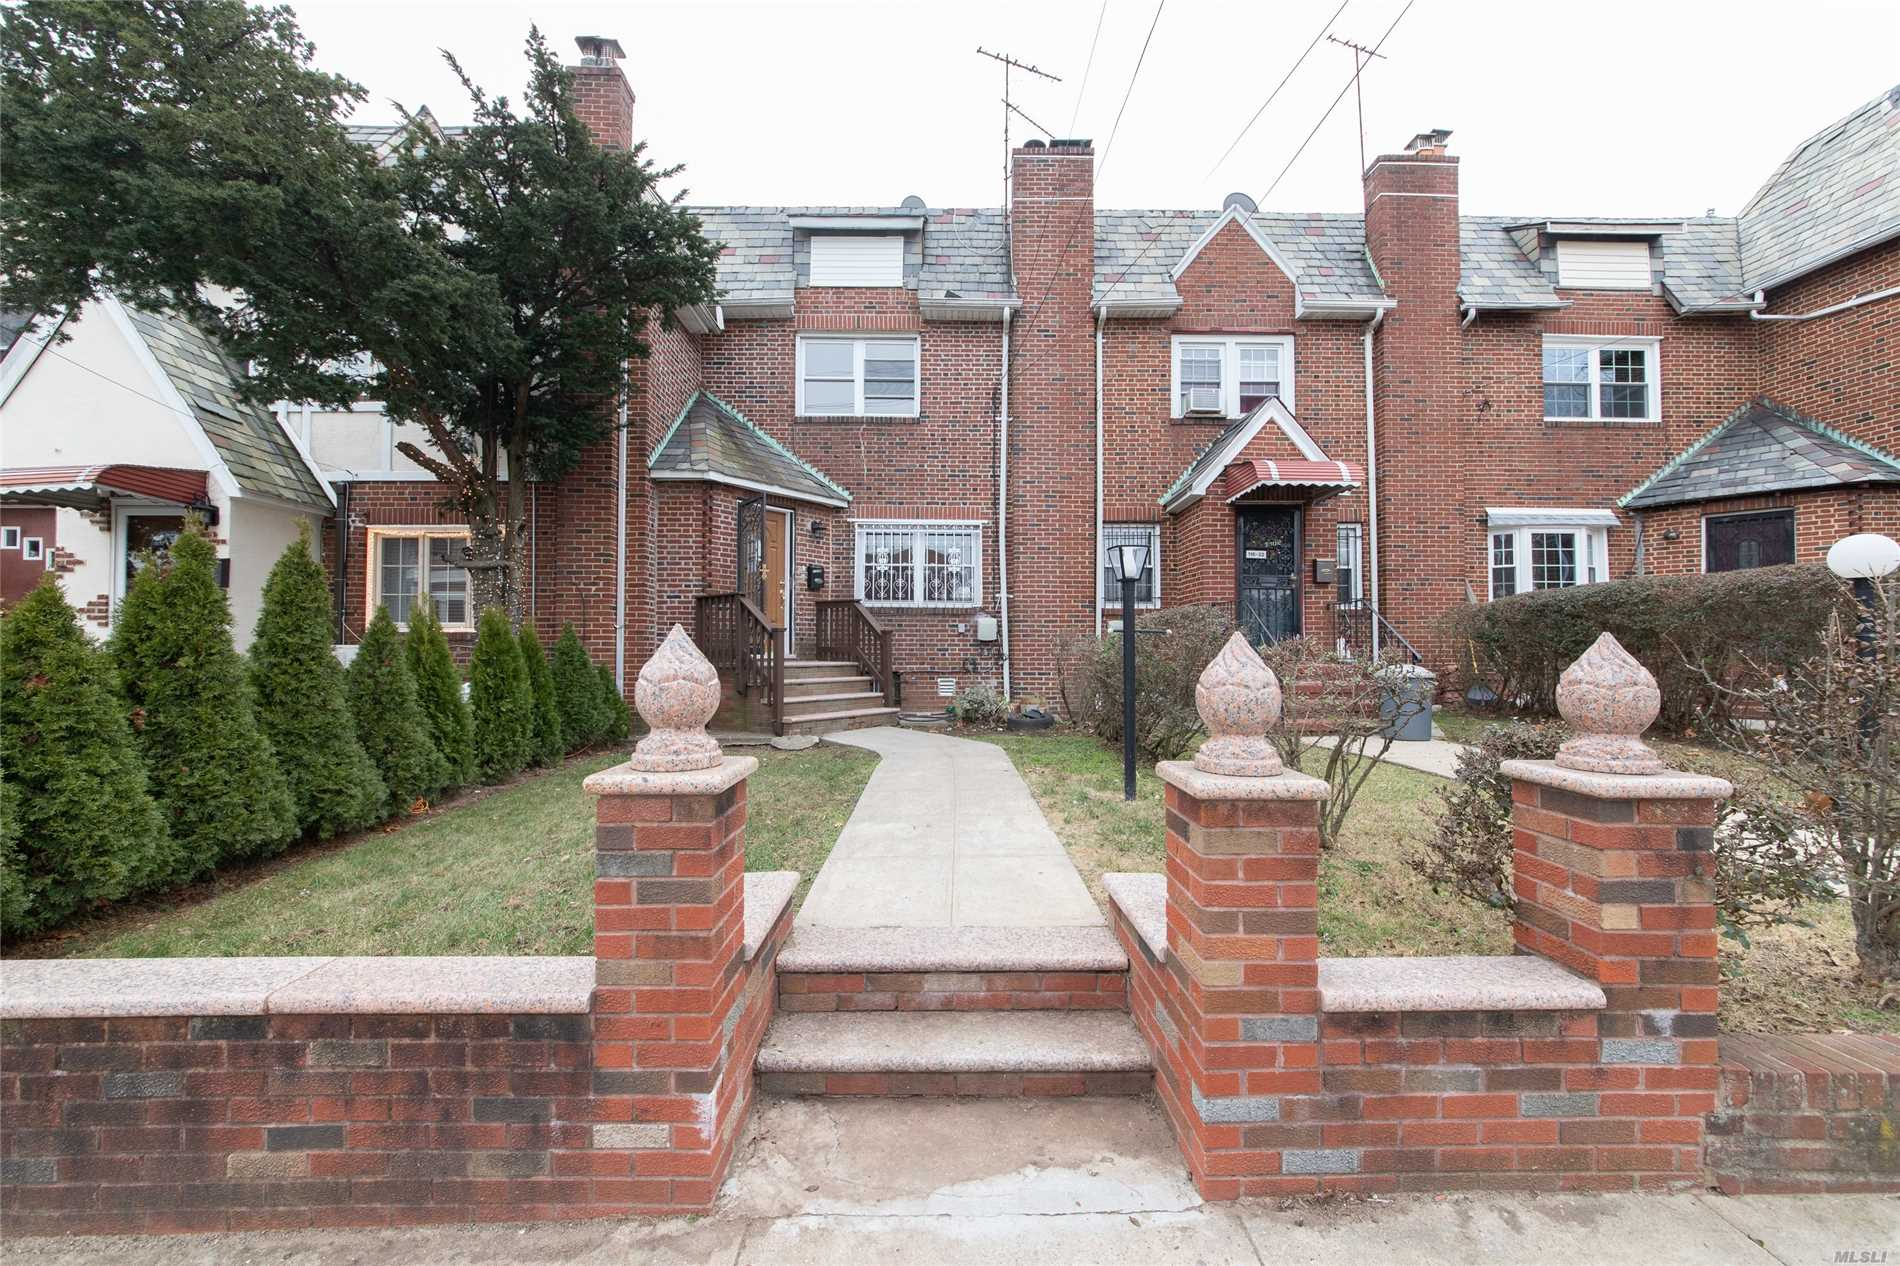 English Brick Tudor In The Heart Of Saint Albans, Queens. Conveniently Located Around The Corner From The (Lirr) Long Island Railroad (St. Albans Stop). Enter Into The Foyer Then Proceed To The Open Floor Plan Livingroom With The Original Parquet Hardwood Flooring And A Brick Fireplace For Those Cozy Evenings. There Is A Half Bath On The First Floor For Guests. The Formal Dining Room Area Leads Into The Open Concept Kitchen With All New White Cabinetry With Soft Closed Cabinets And Drawers...